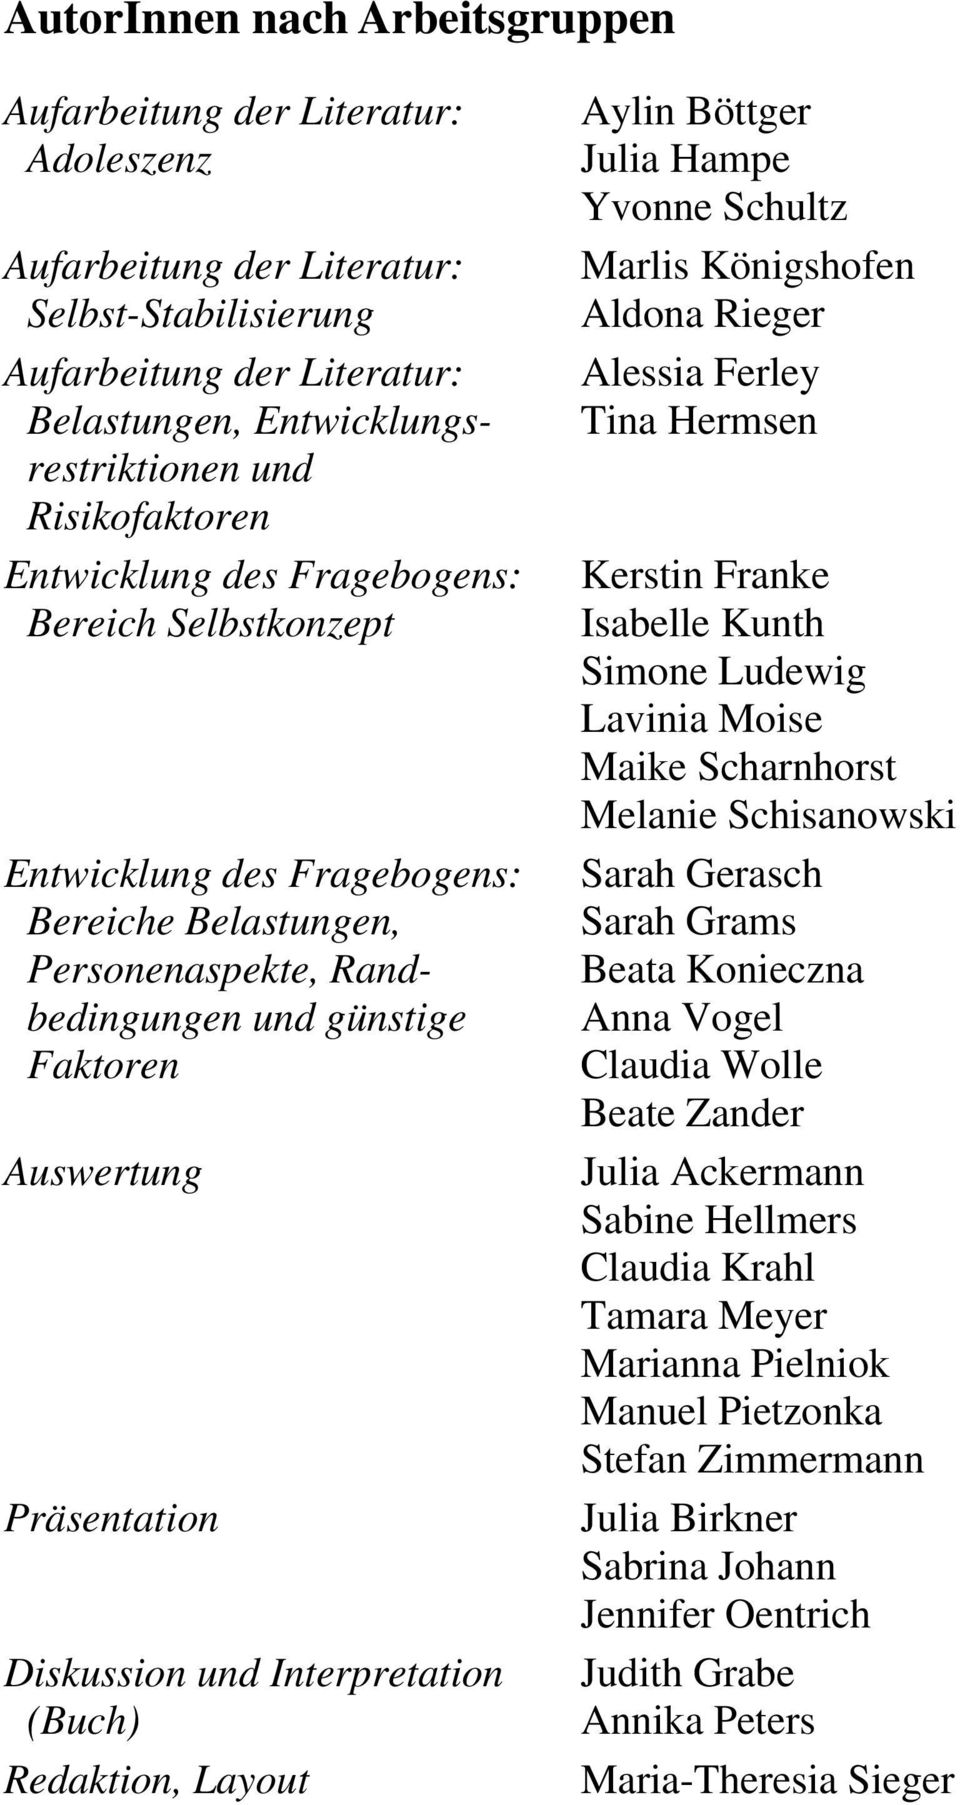 Diskussion und Interpretation (Buch) Redaktion, Layout Aylin Böttger Julia Hampe Yvonne Schultz Marlis Königshofen Aldona Rieger Alessia Ferley Tina Hermsen Kerstin Franke Isabelle Kunth Simone